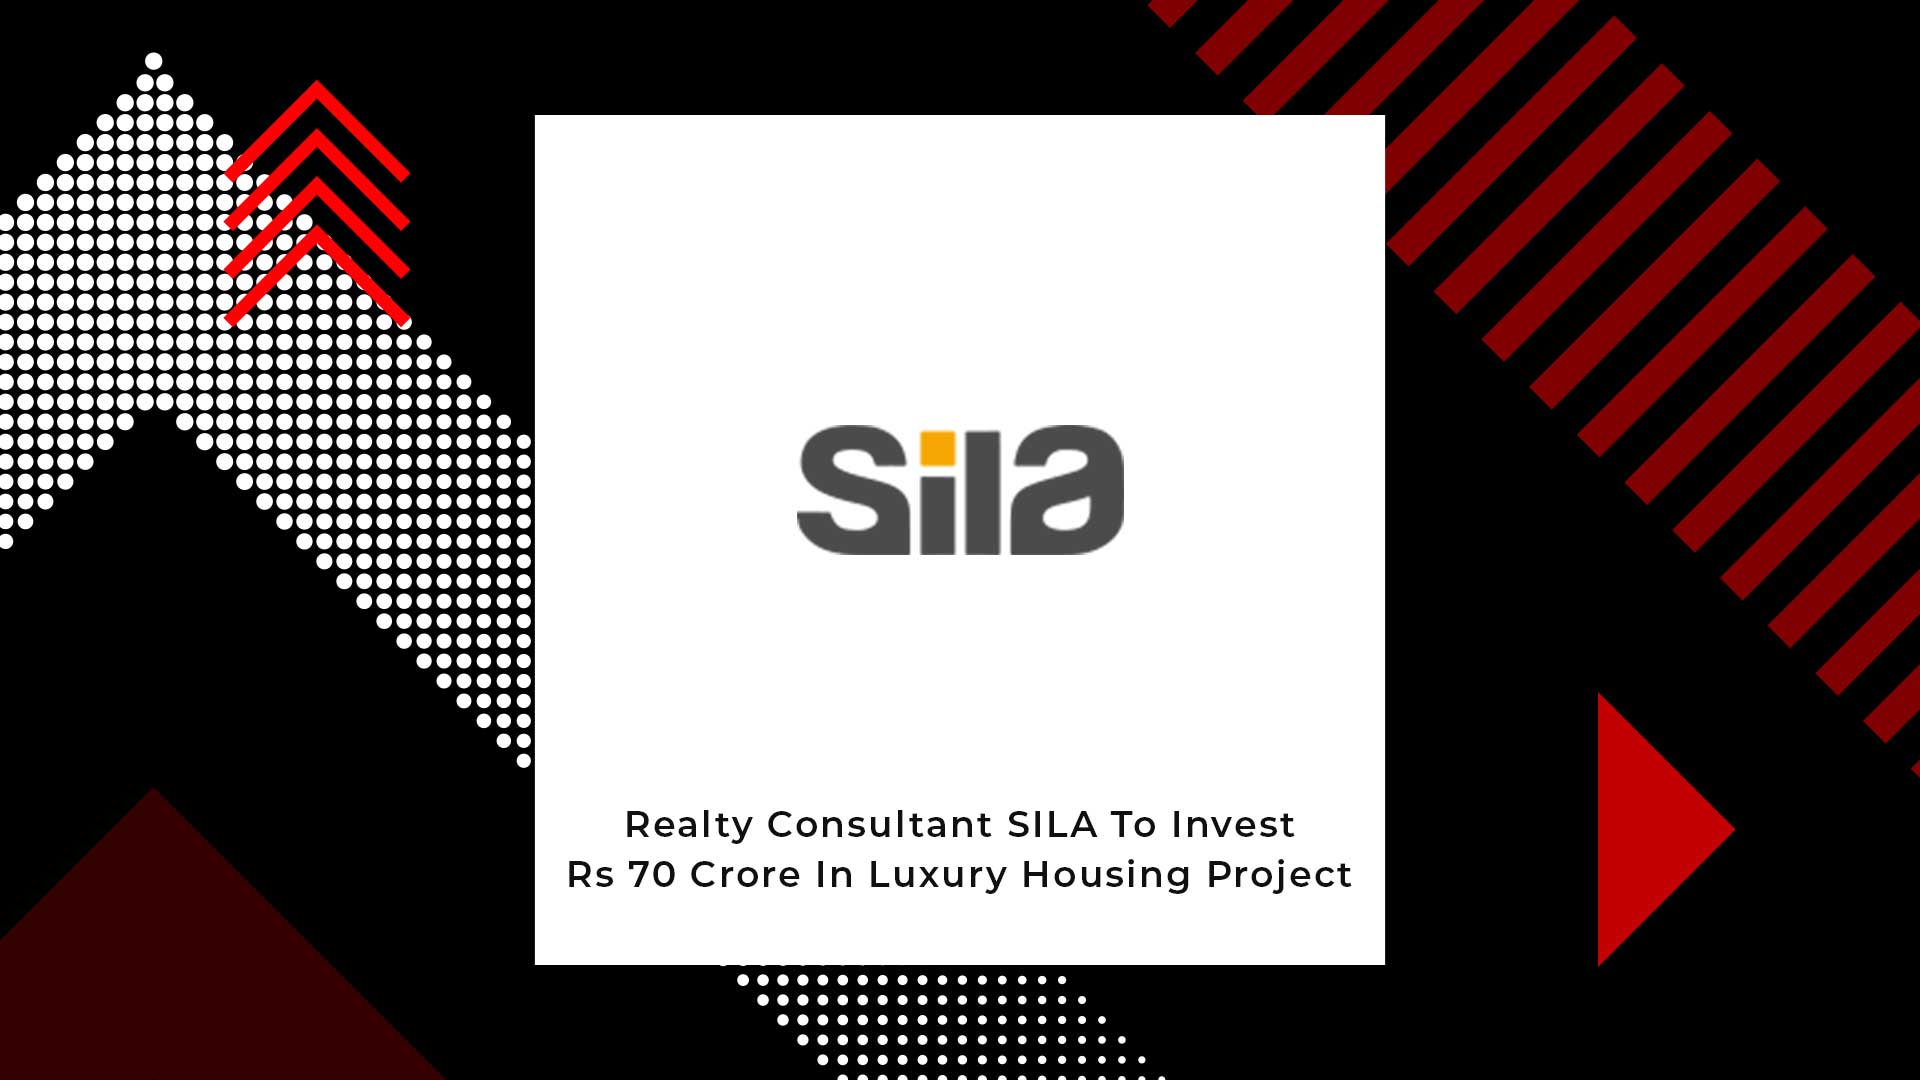 SILA Ventures Into Real Estate With Its First Project Near Mumbai